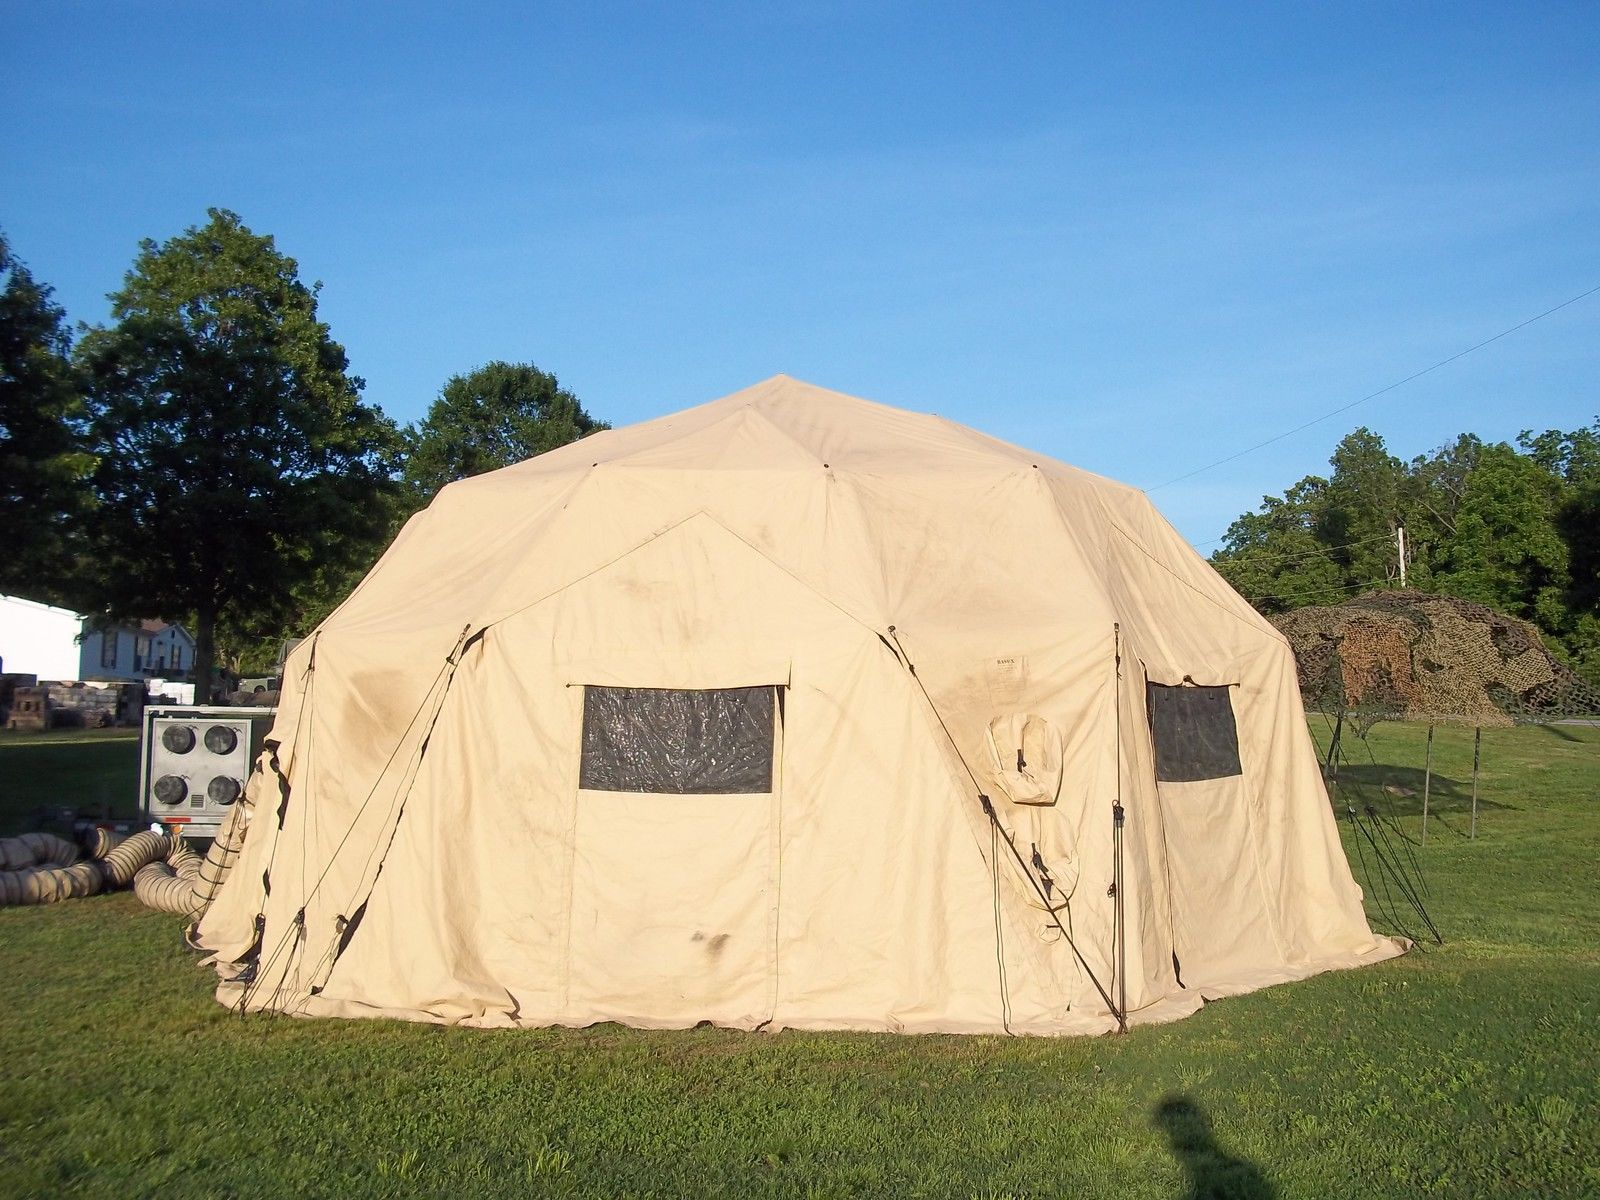 MILITARY TENT BASE- X 6D31 TAN  EASY UP  31u0027x31u0027 SURPLUS ARMY CAMPING US : military tents shelters - memphite.com